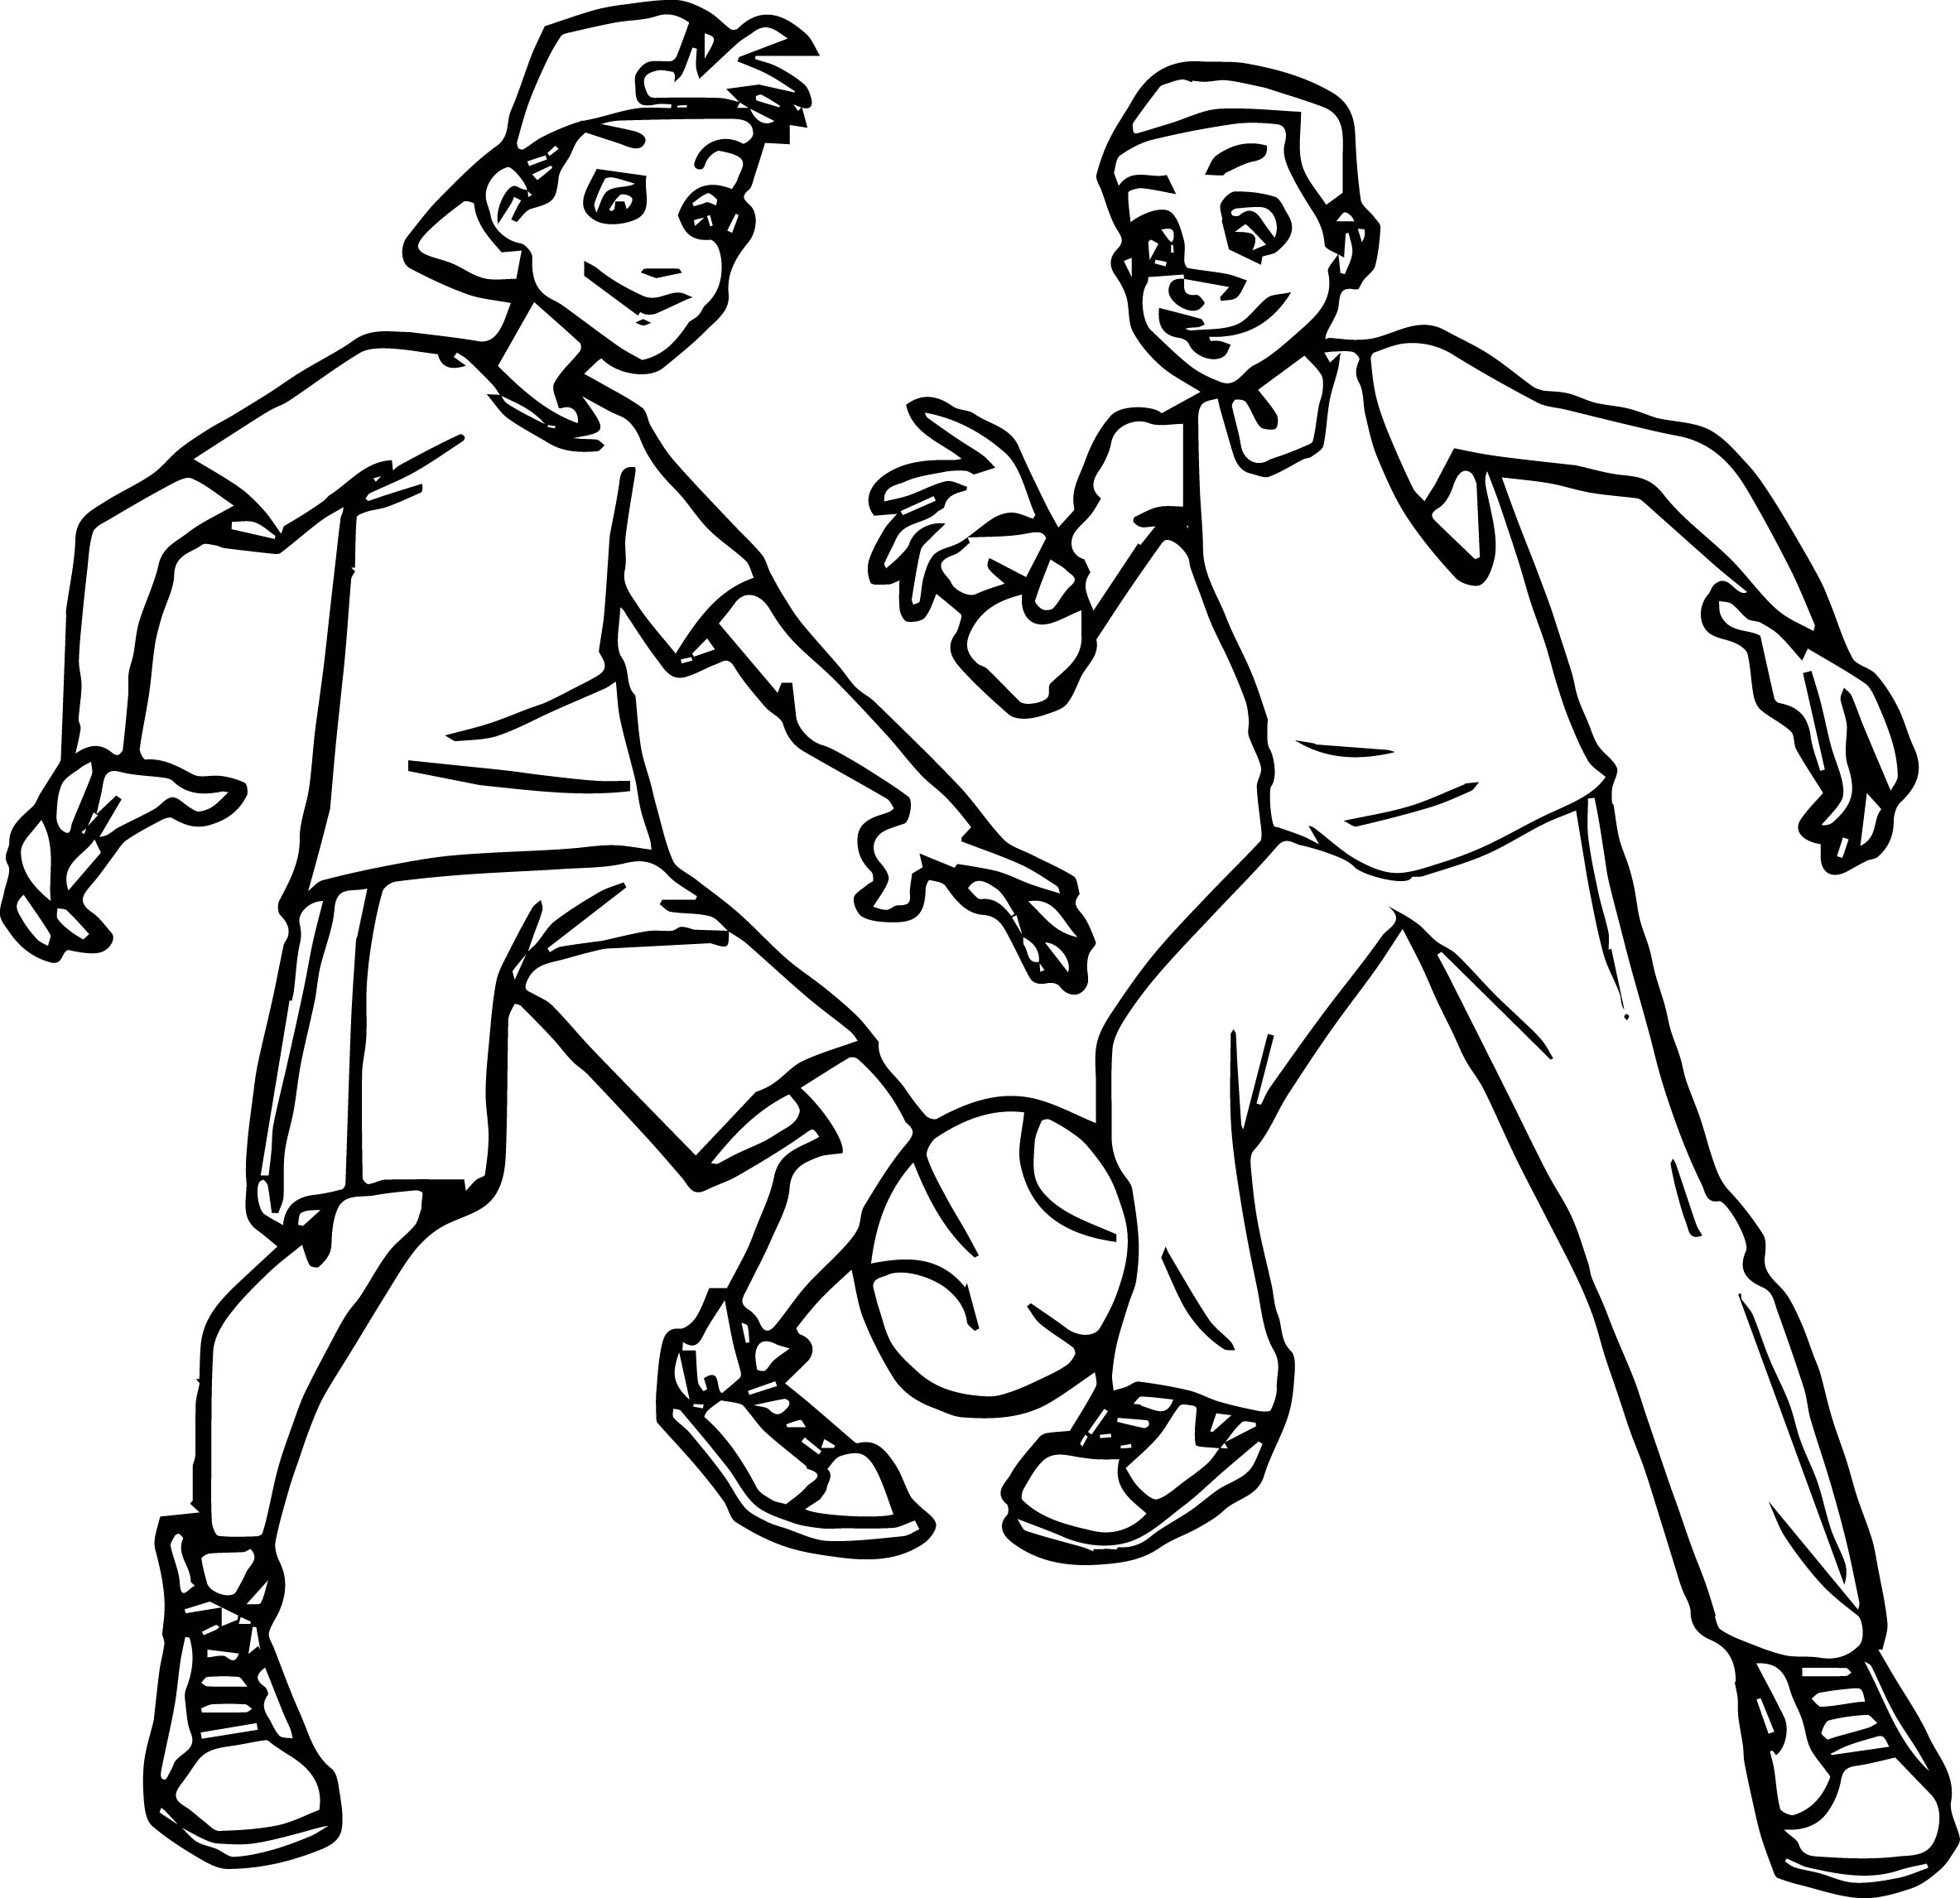 2367x2292 Basketball Players For Kids Coloring Page Wecoloringpage